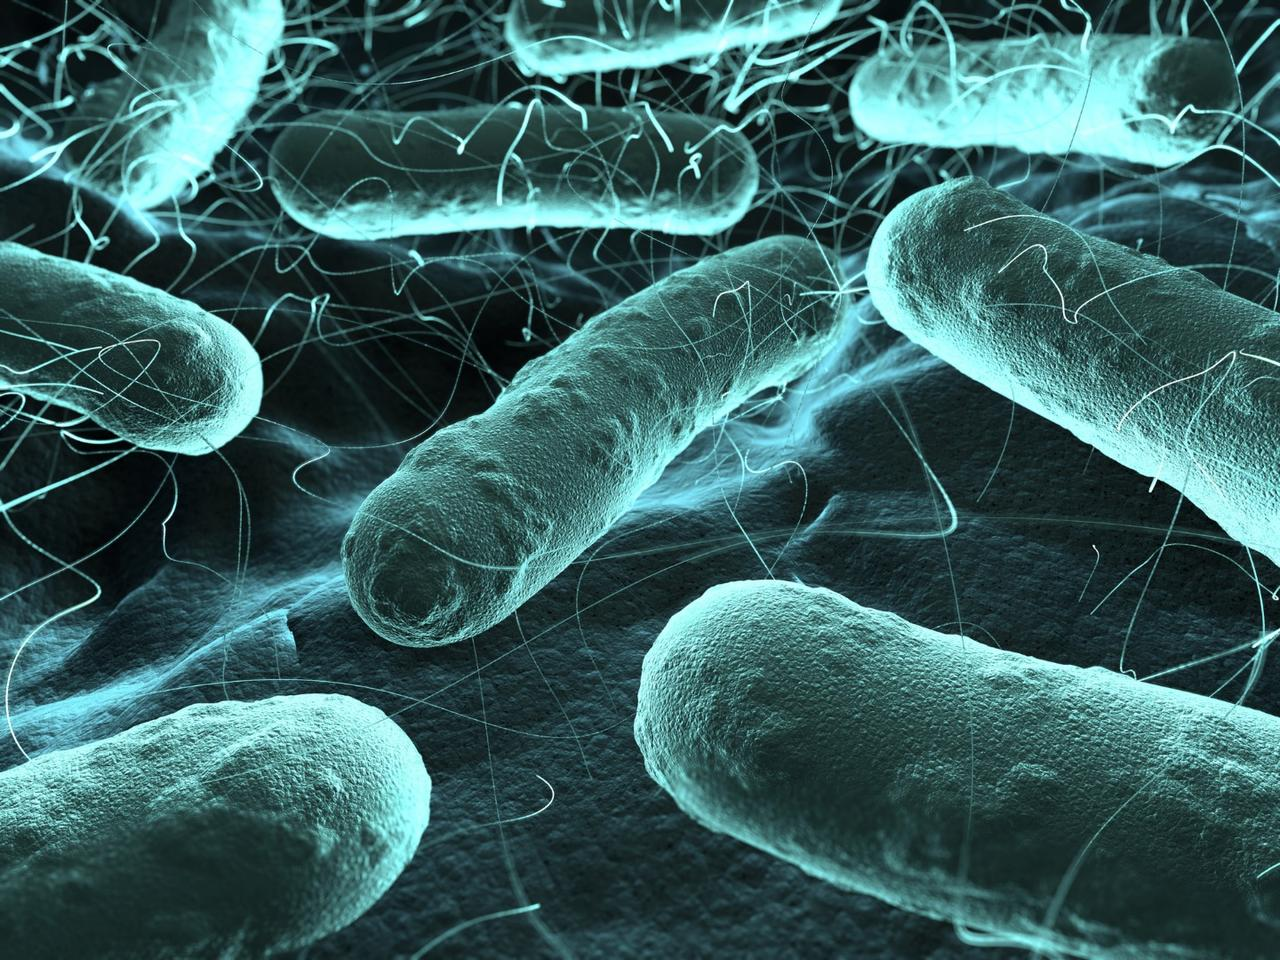 Researchers have developed antibiotics that target only specific strains of bacteria